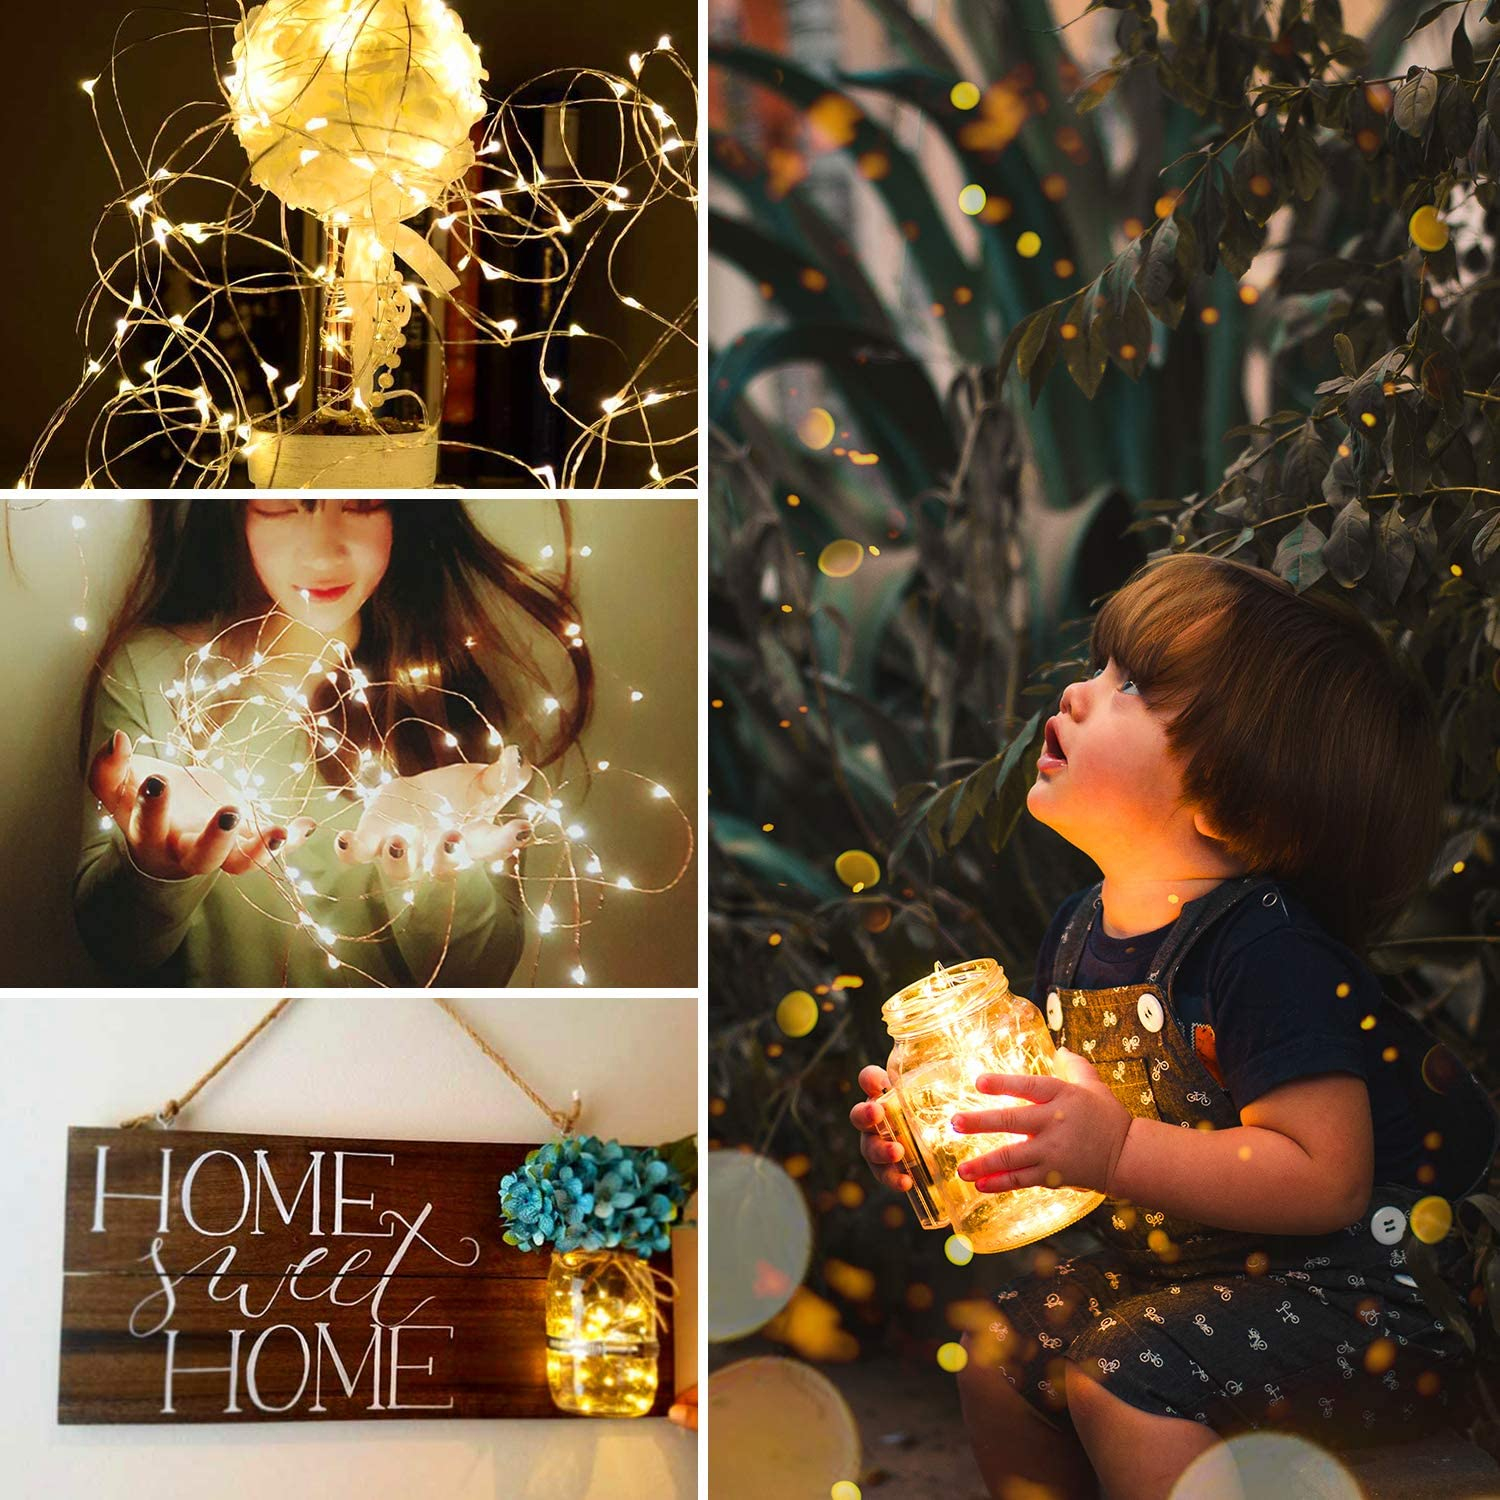 Image of Fairy String lights decorated to a plant, a lady holding it in her hands, and a toddler holding a glass transparent mug with lighted fairy lights in it.